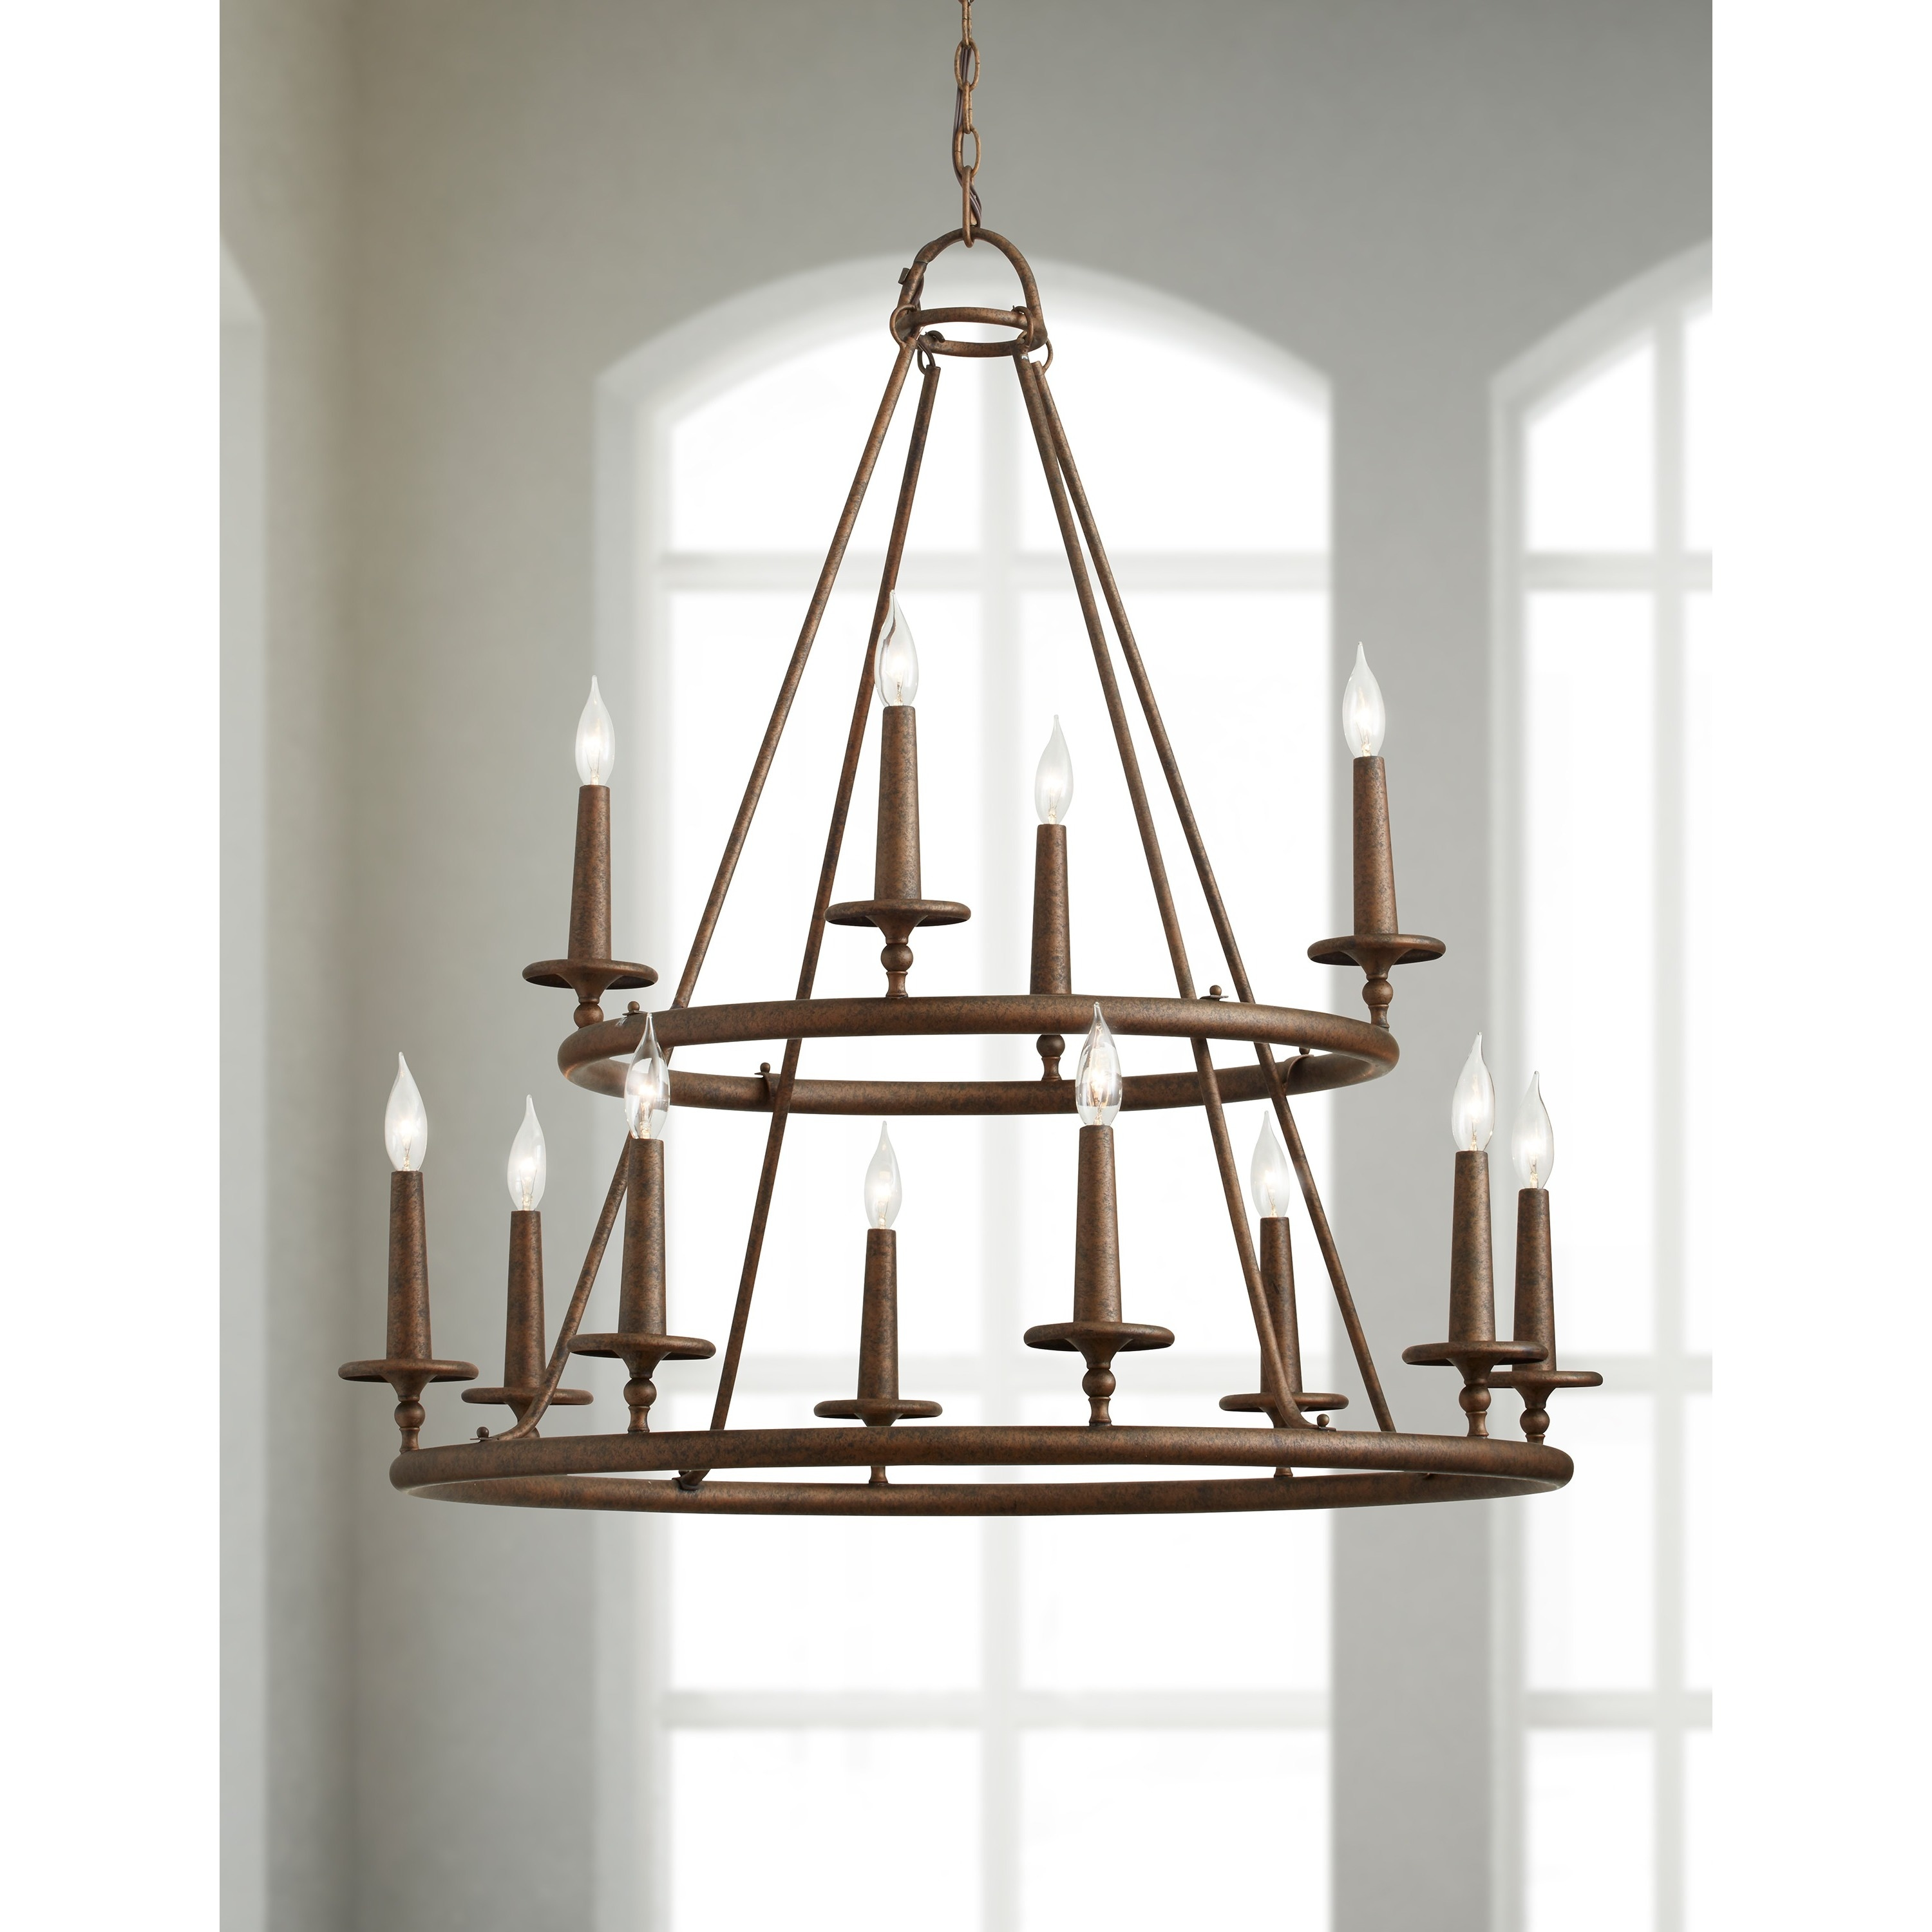 Quoizel voyager 12 light malaga two tier chandelier free quoizel voyager 12 light malaga two tier chandelier free shipping today overstock 16608759 aloadofball Images